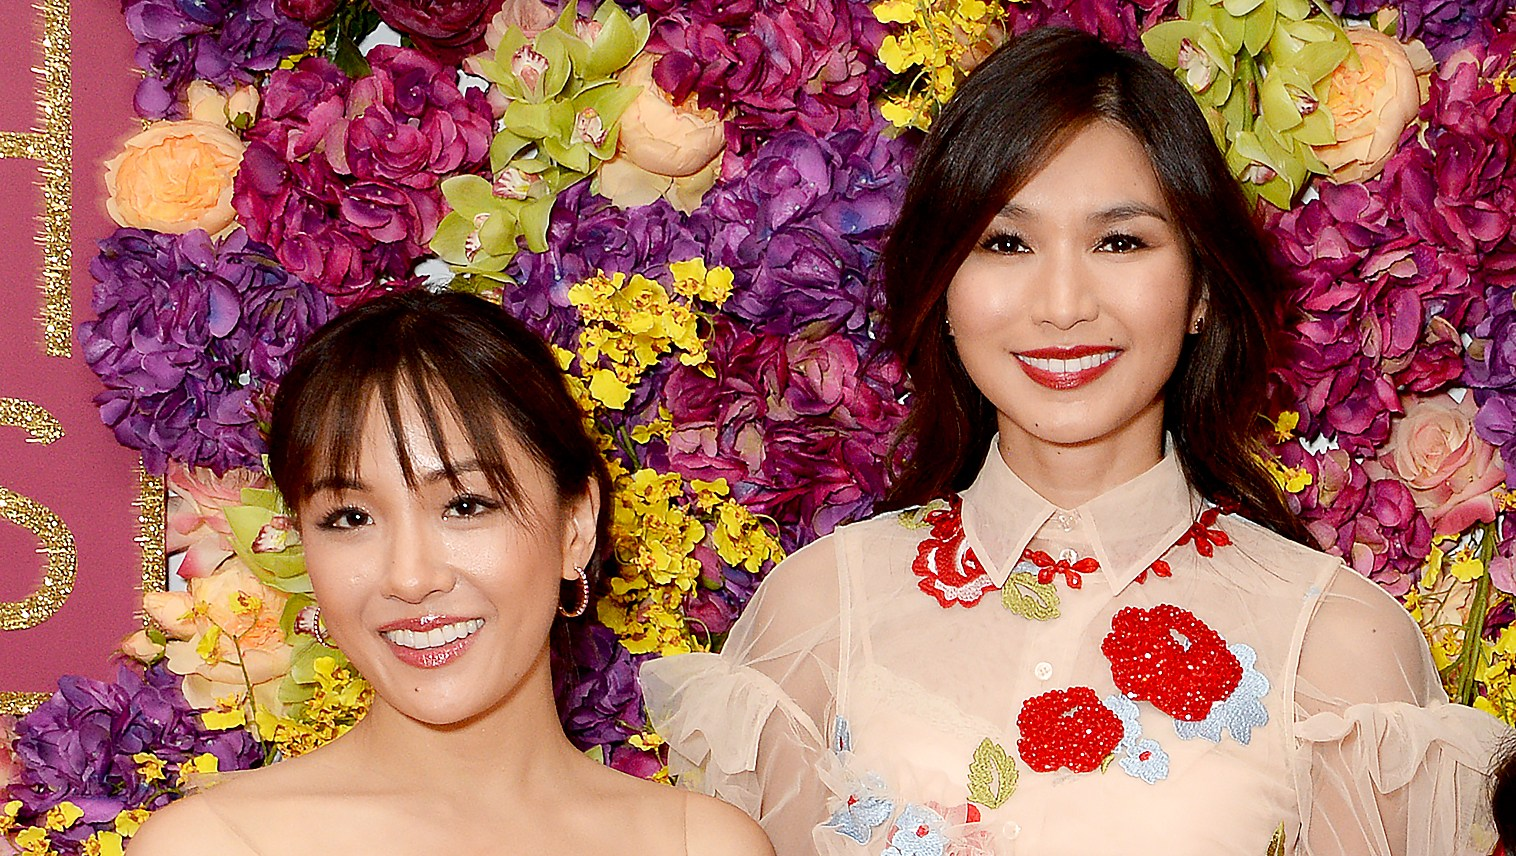 Gemma Chan Claims She Accidentally 'Liked' Post Dissing 'Crazy Rich Asians' Costar Constance Wu: 'Sorry to Disappoint'